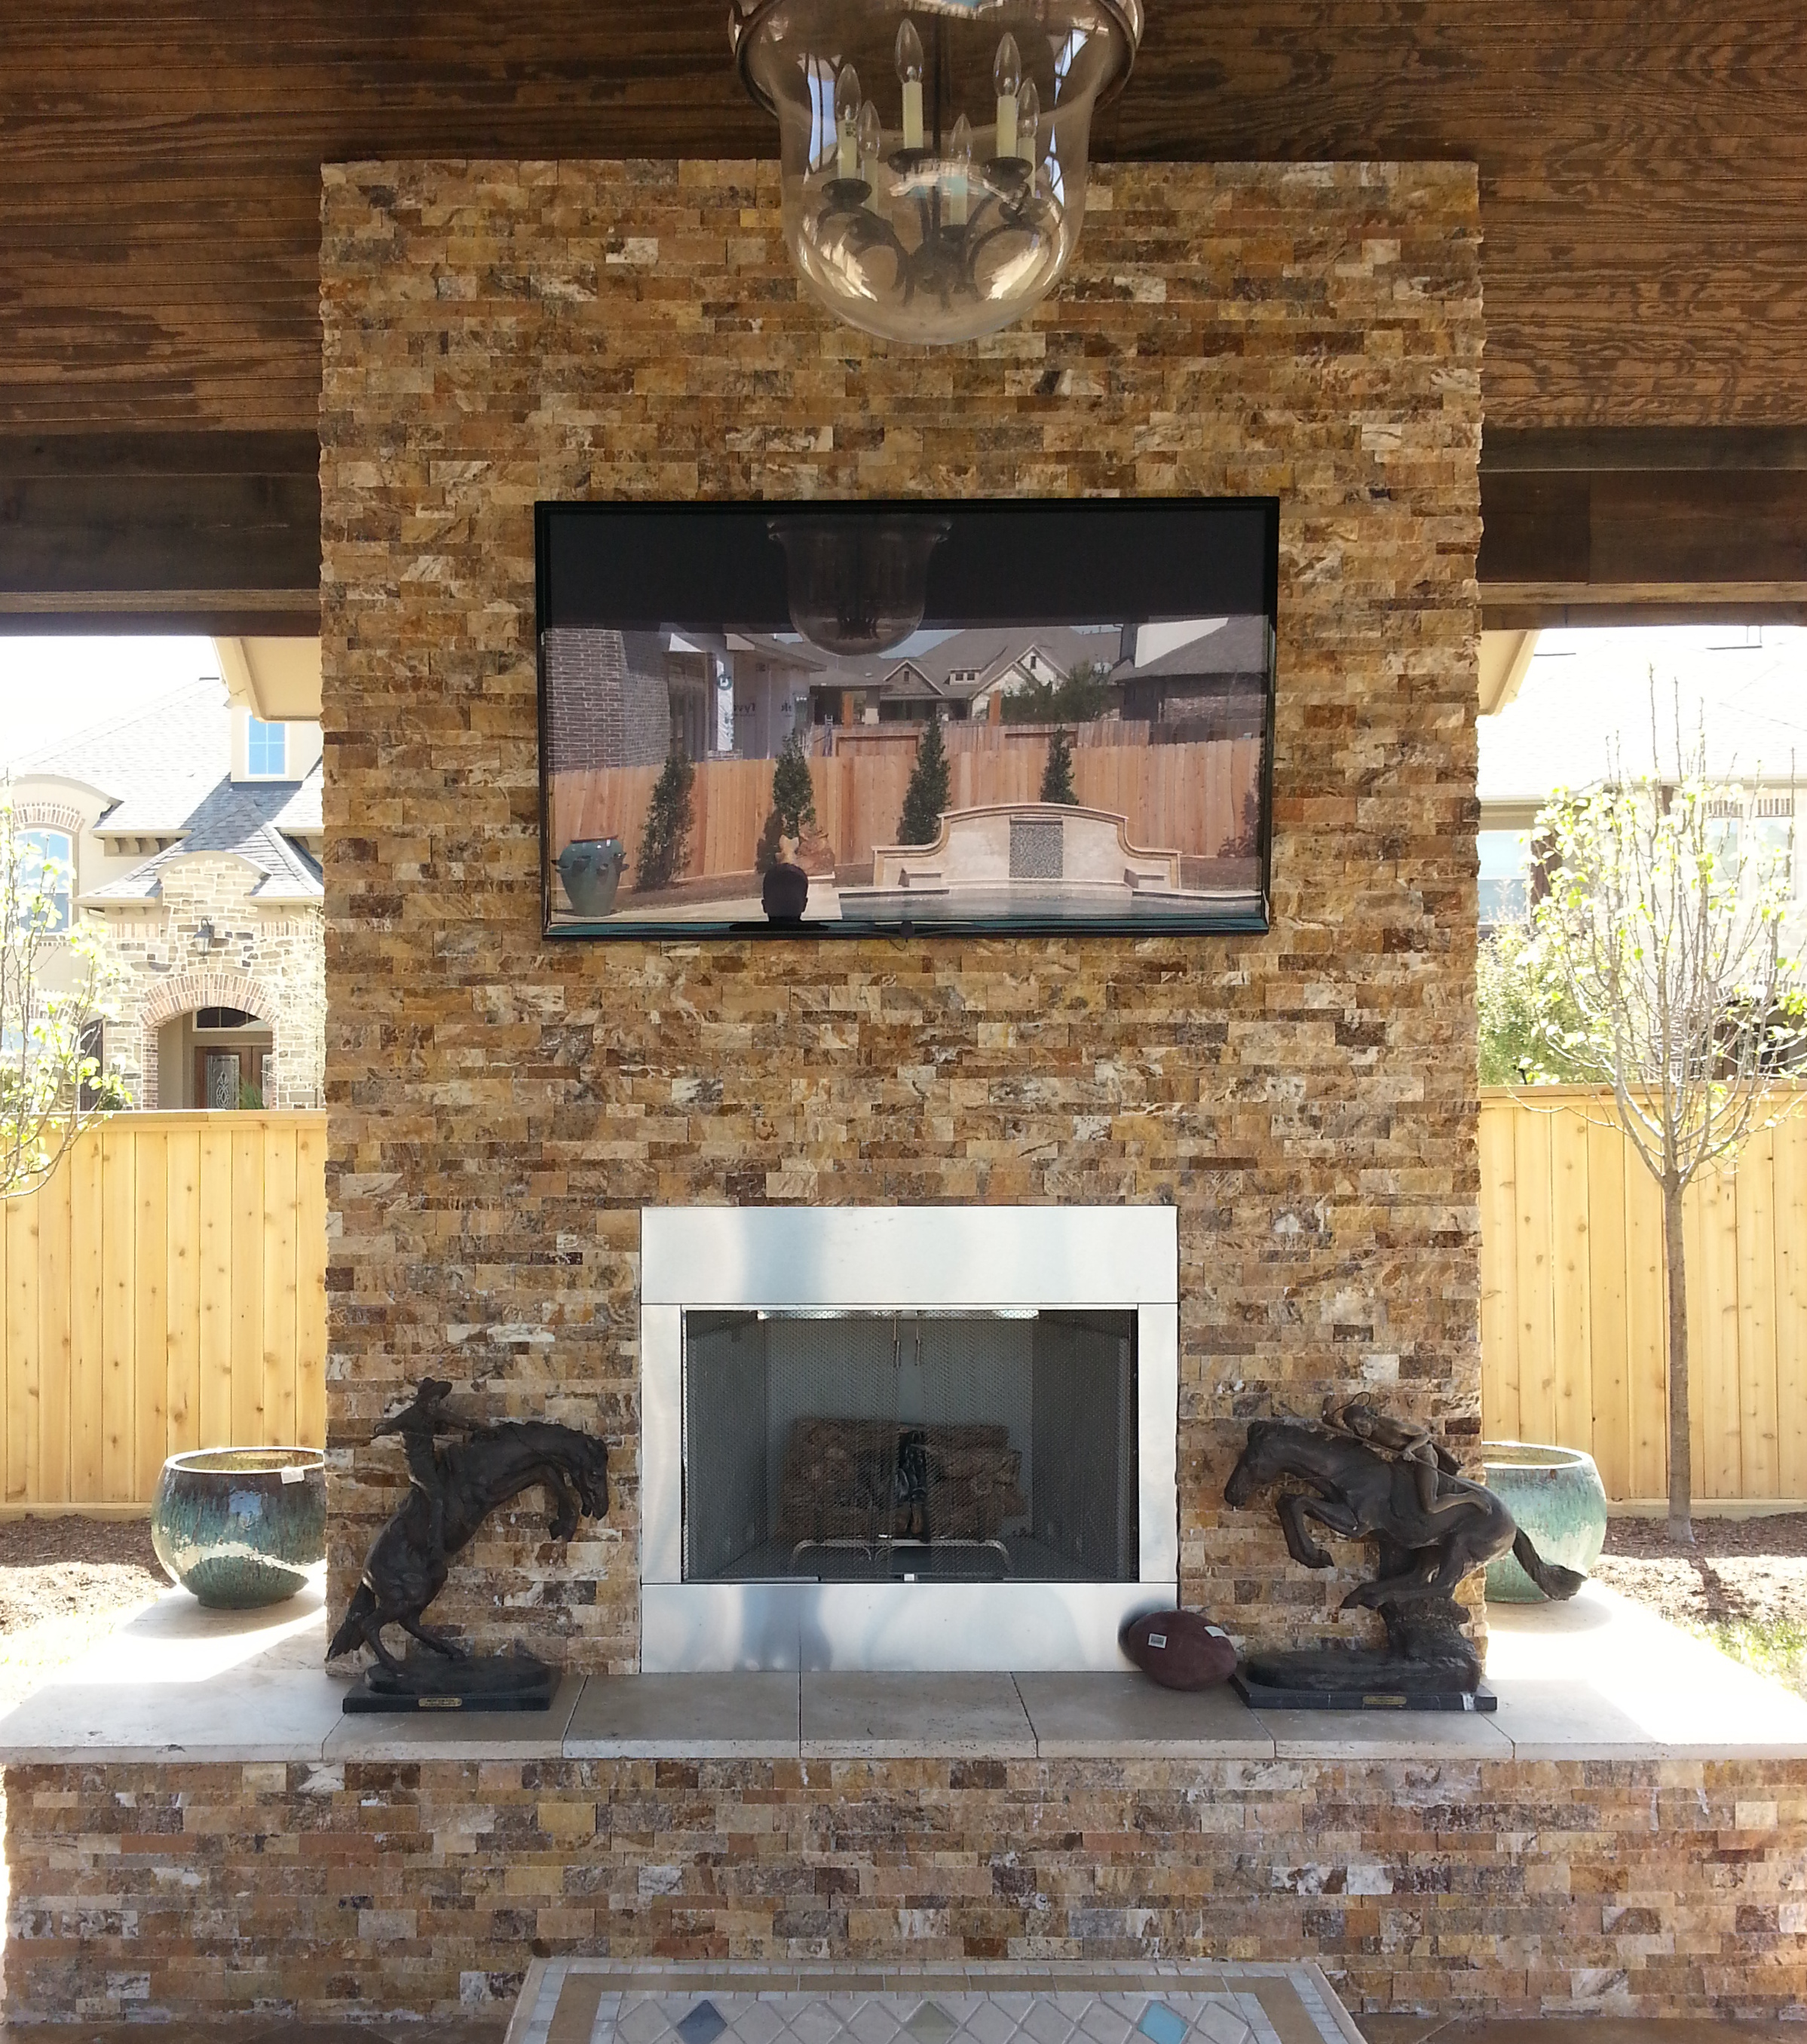 Interior Stone Wall Fireplace Prefab Fieldstone Fireplaces: What Are Stone Veneer Panels?